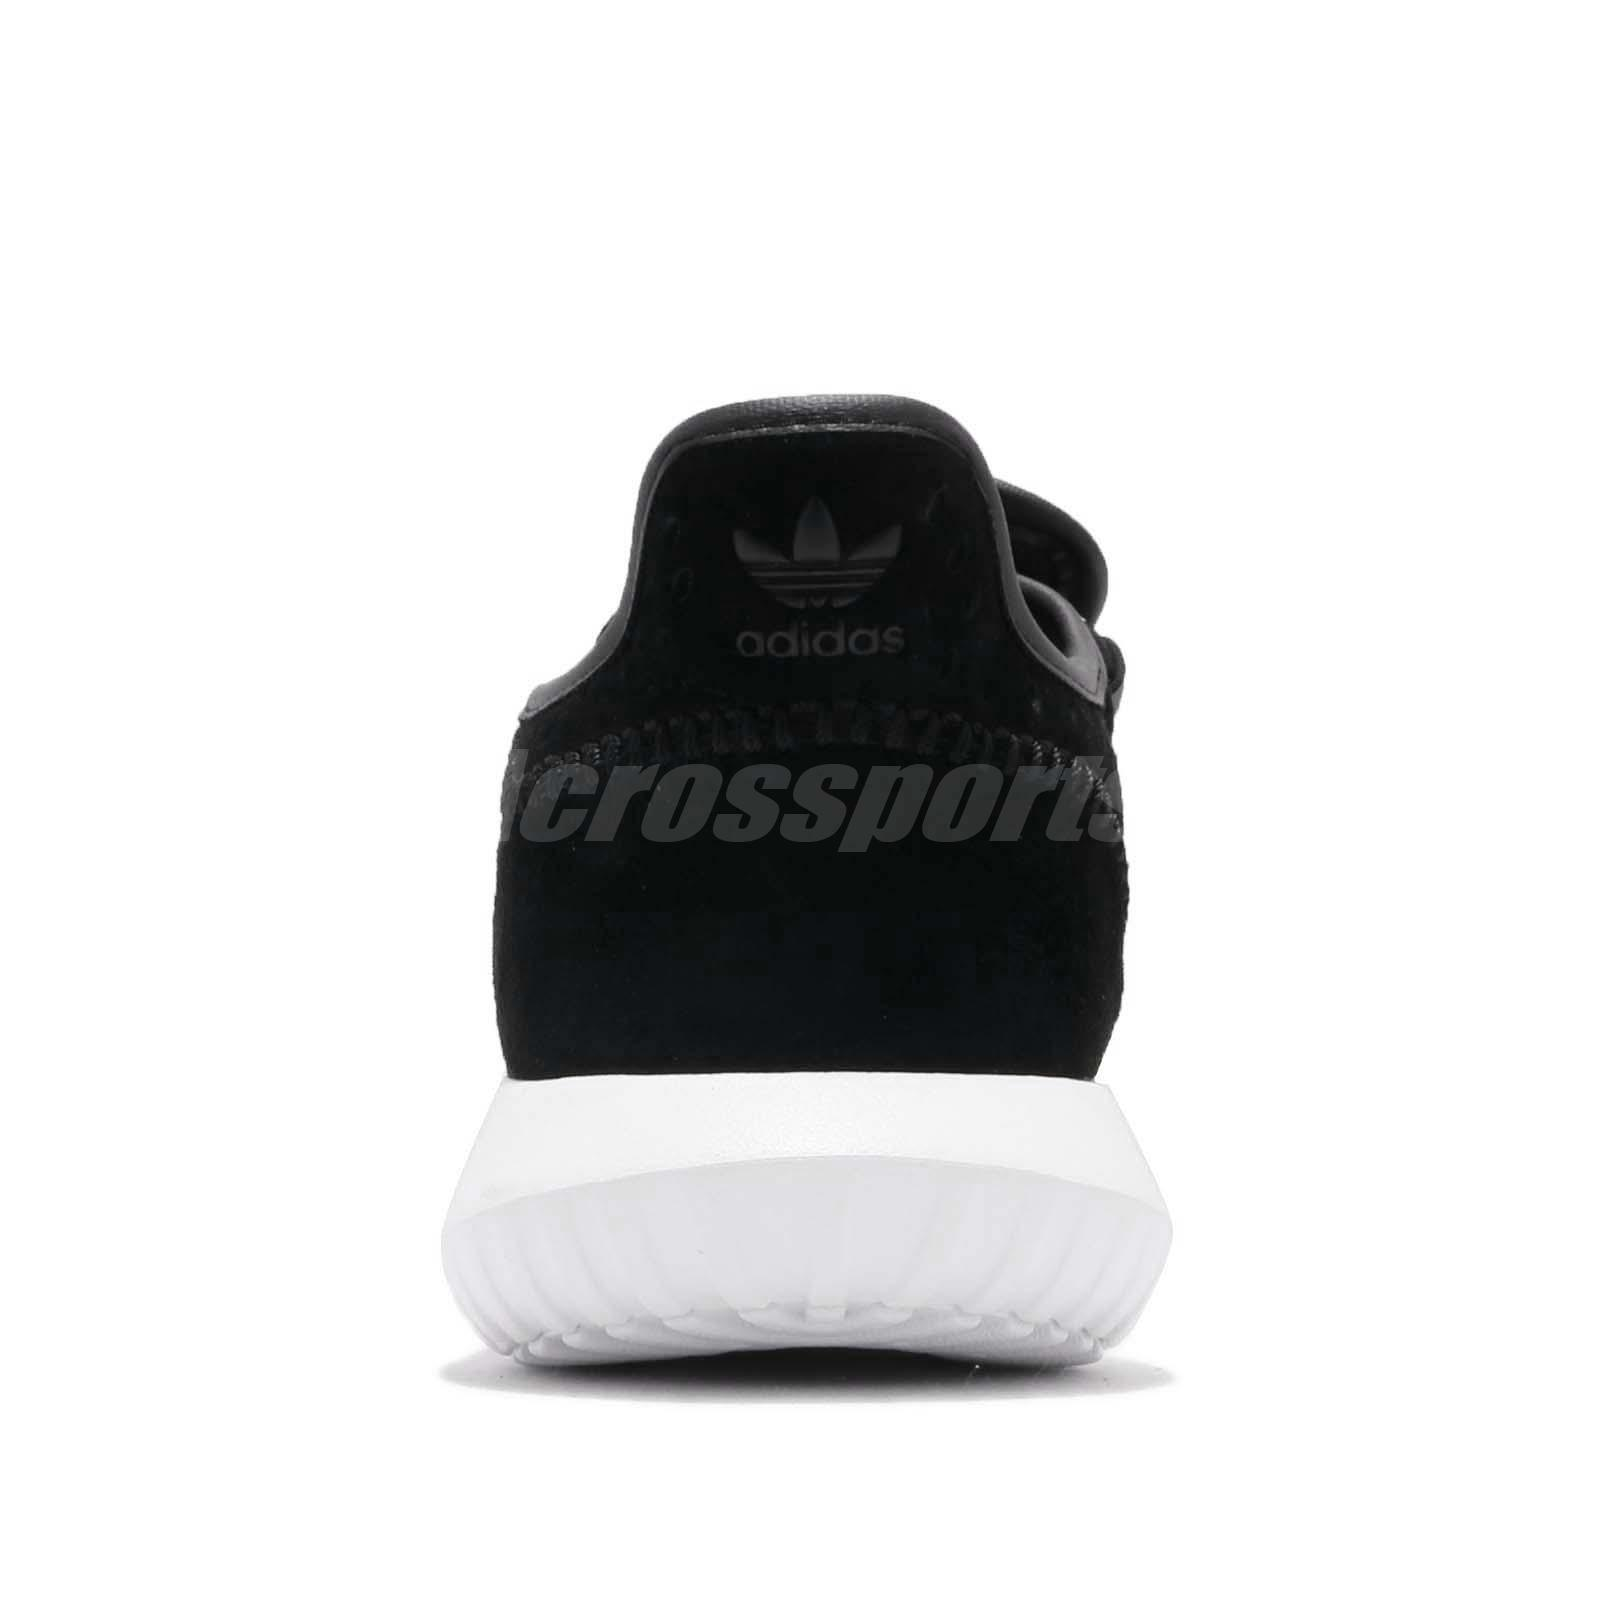 reputable site a2f36 f09ac Details about adidas Originals Tubular Shadow Black White Men Casual Shoes  Sneakers CQ0933